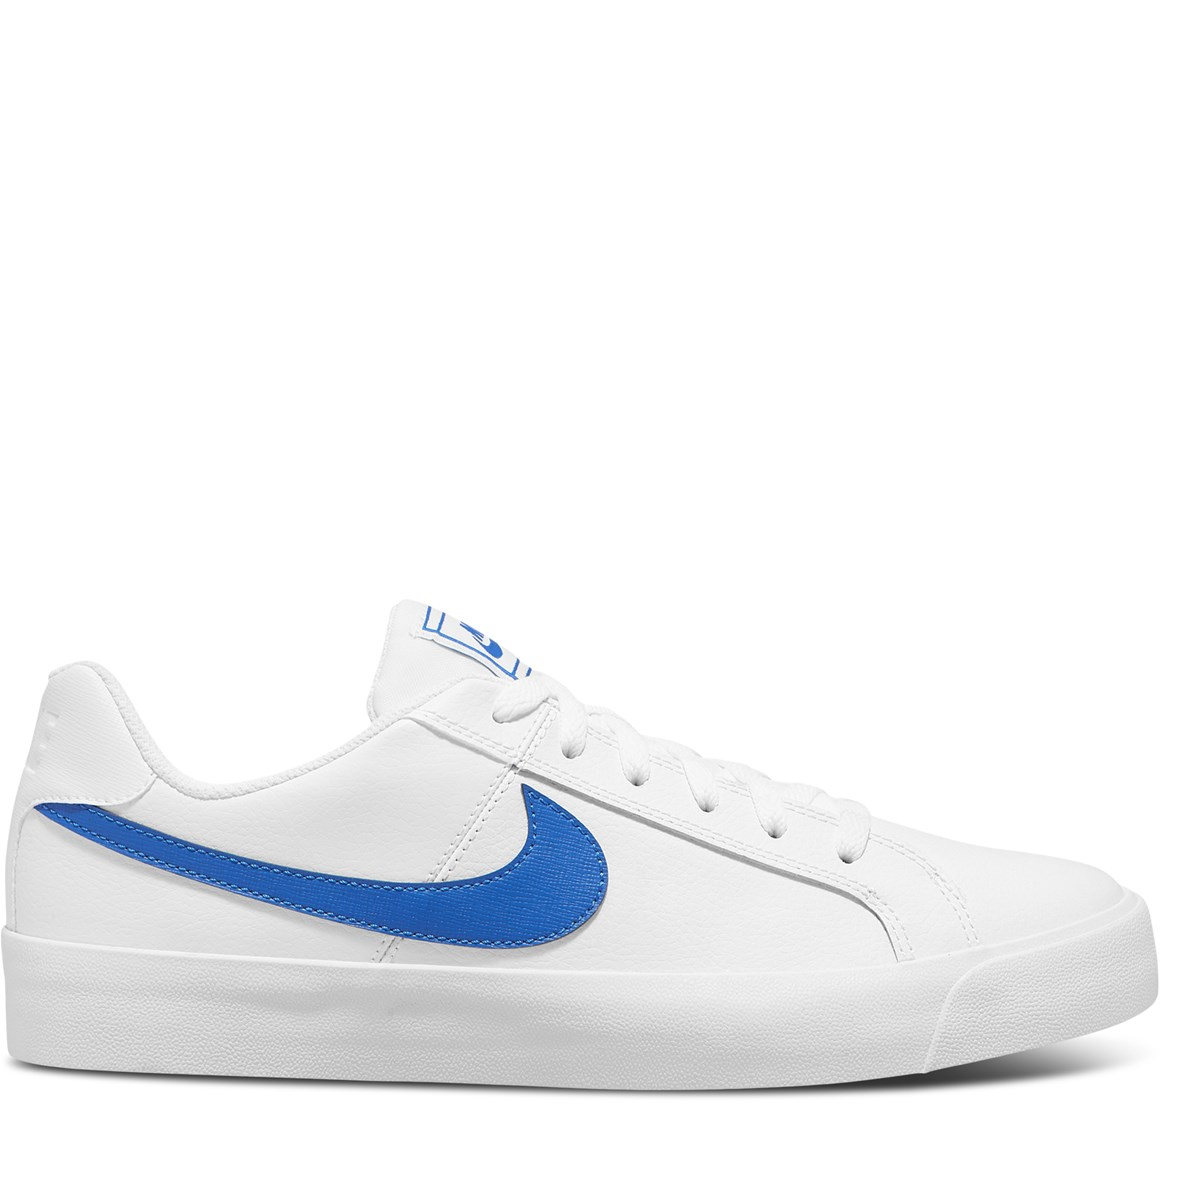 Men's Court Royale Sneakers in White